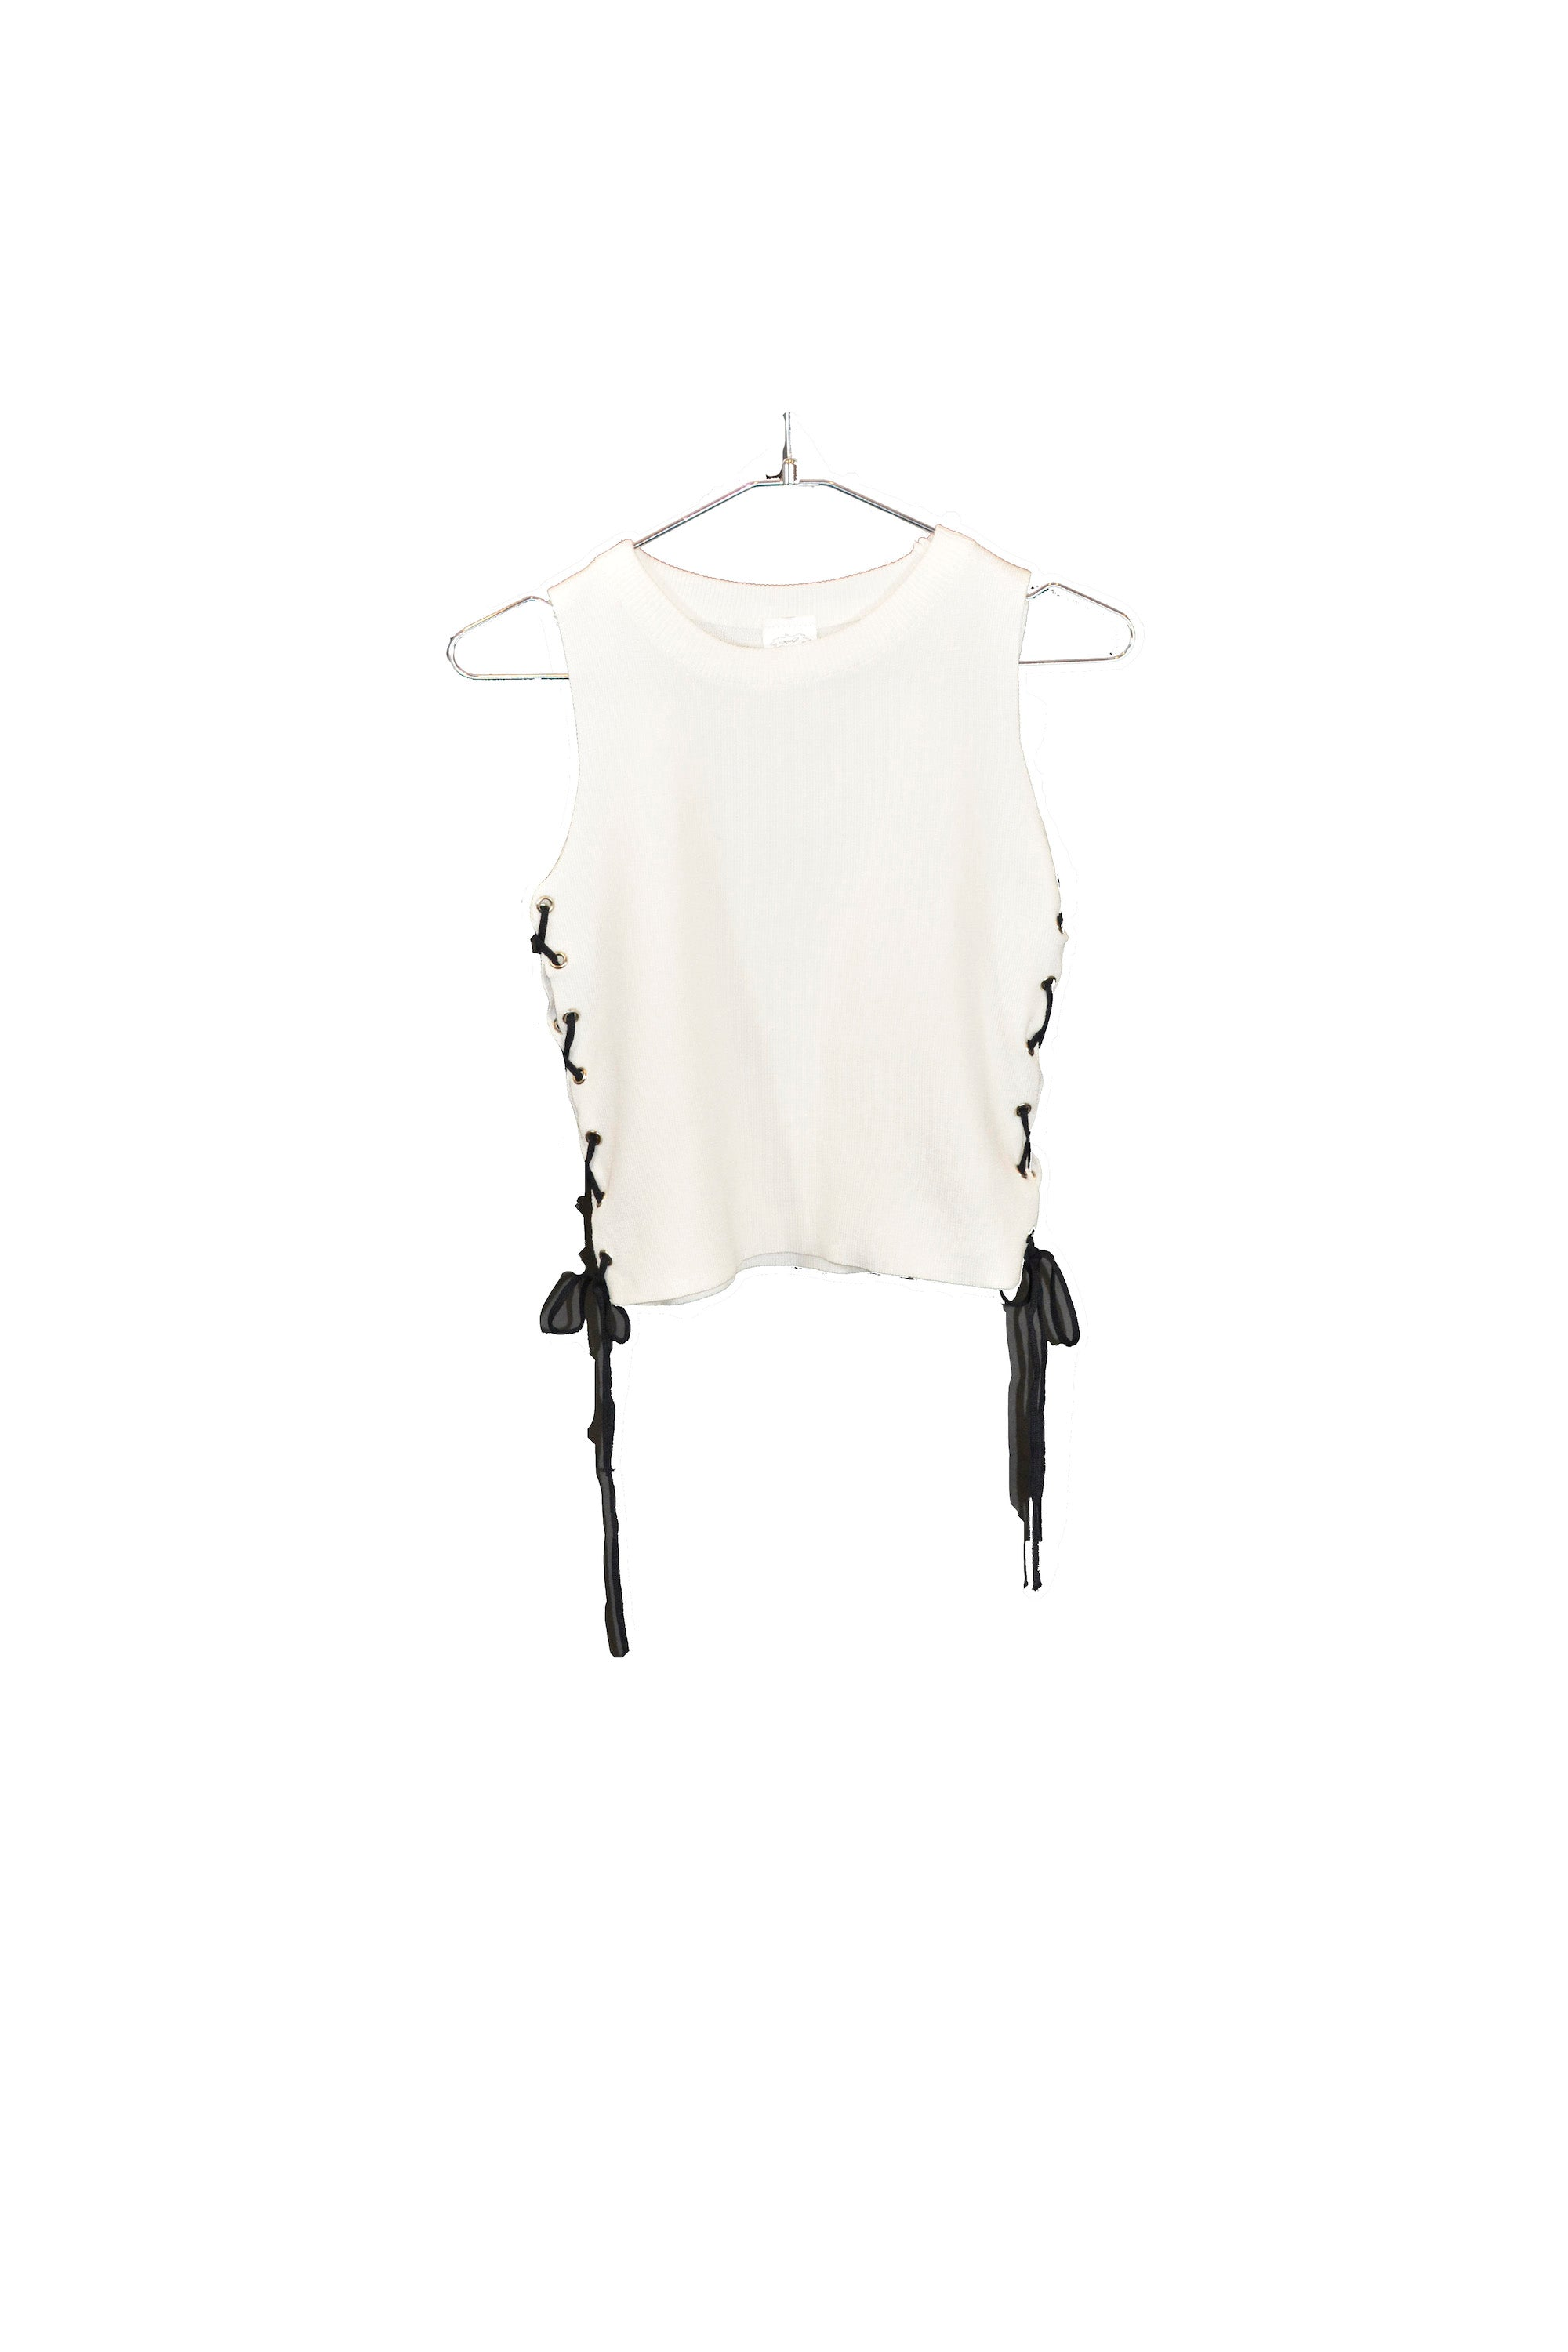 Sleeveless White Side Lace-Up Tank Top With Round Neckline